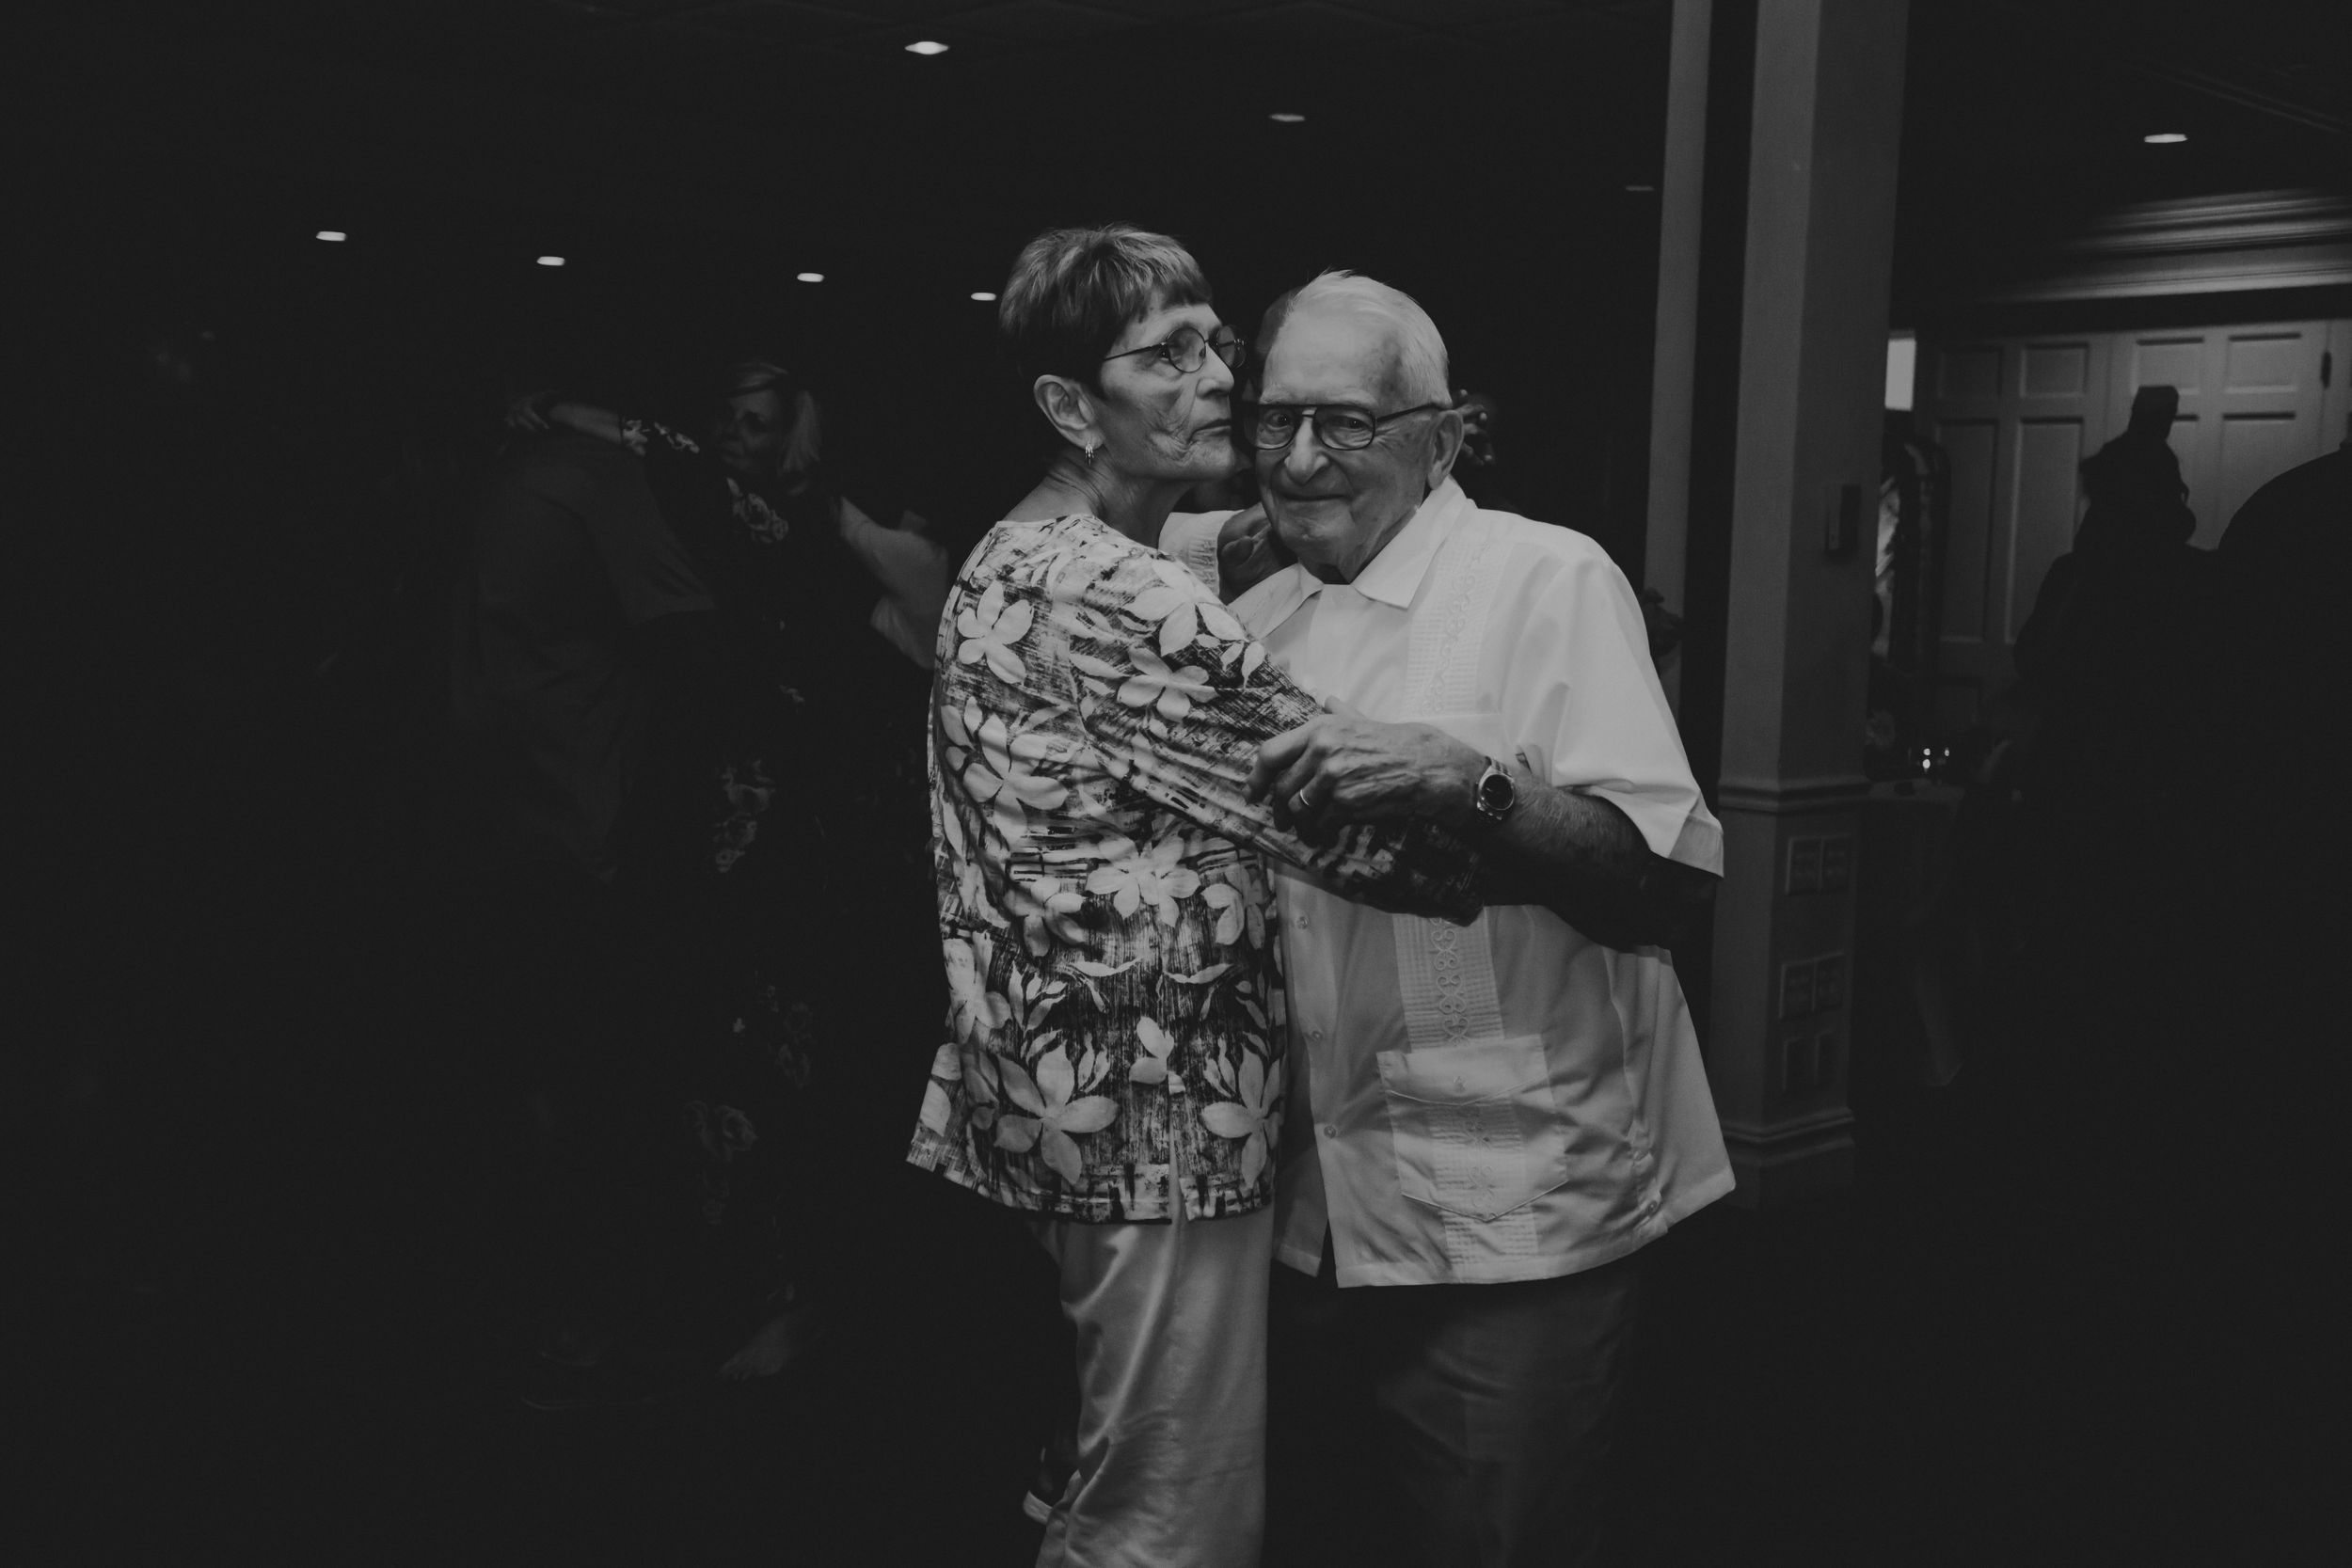 Photo of the couples' grandparents dancing together during the reception.